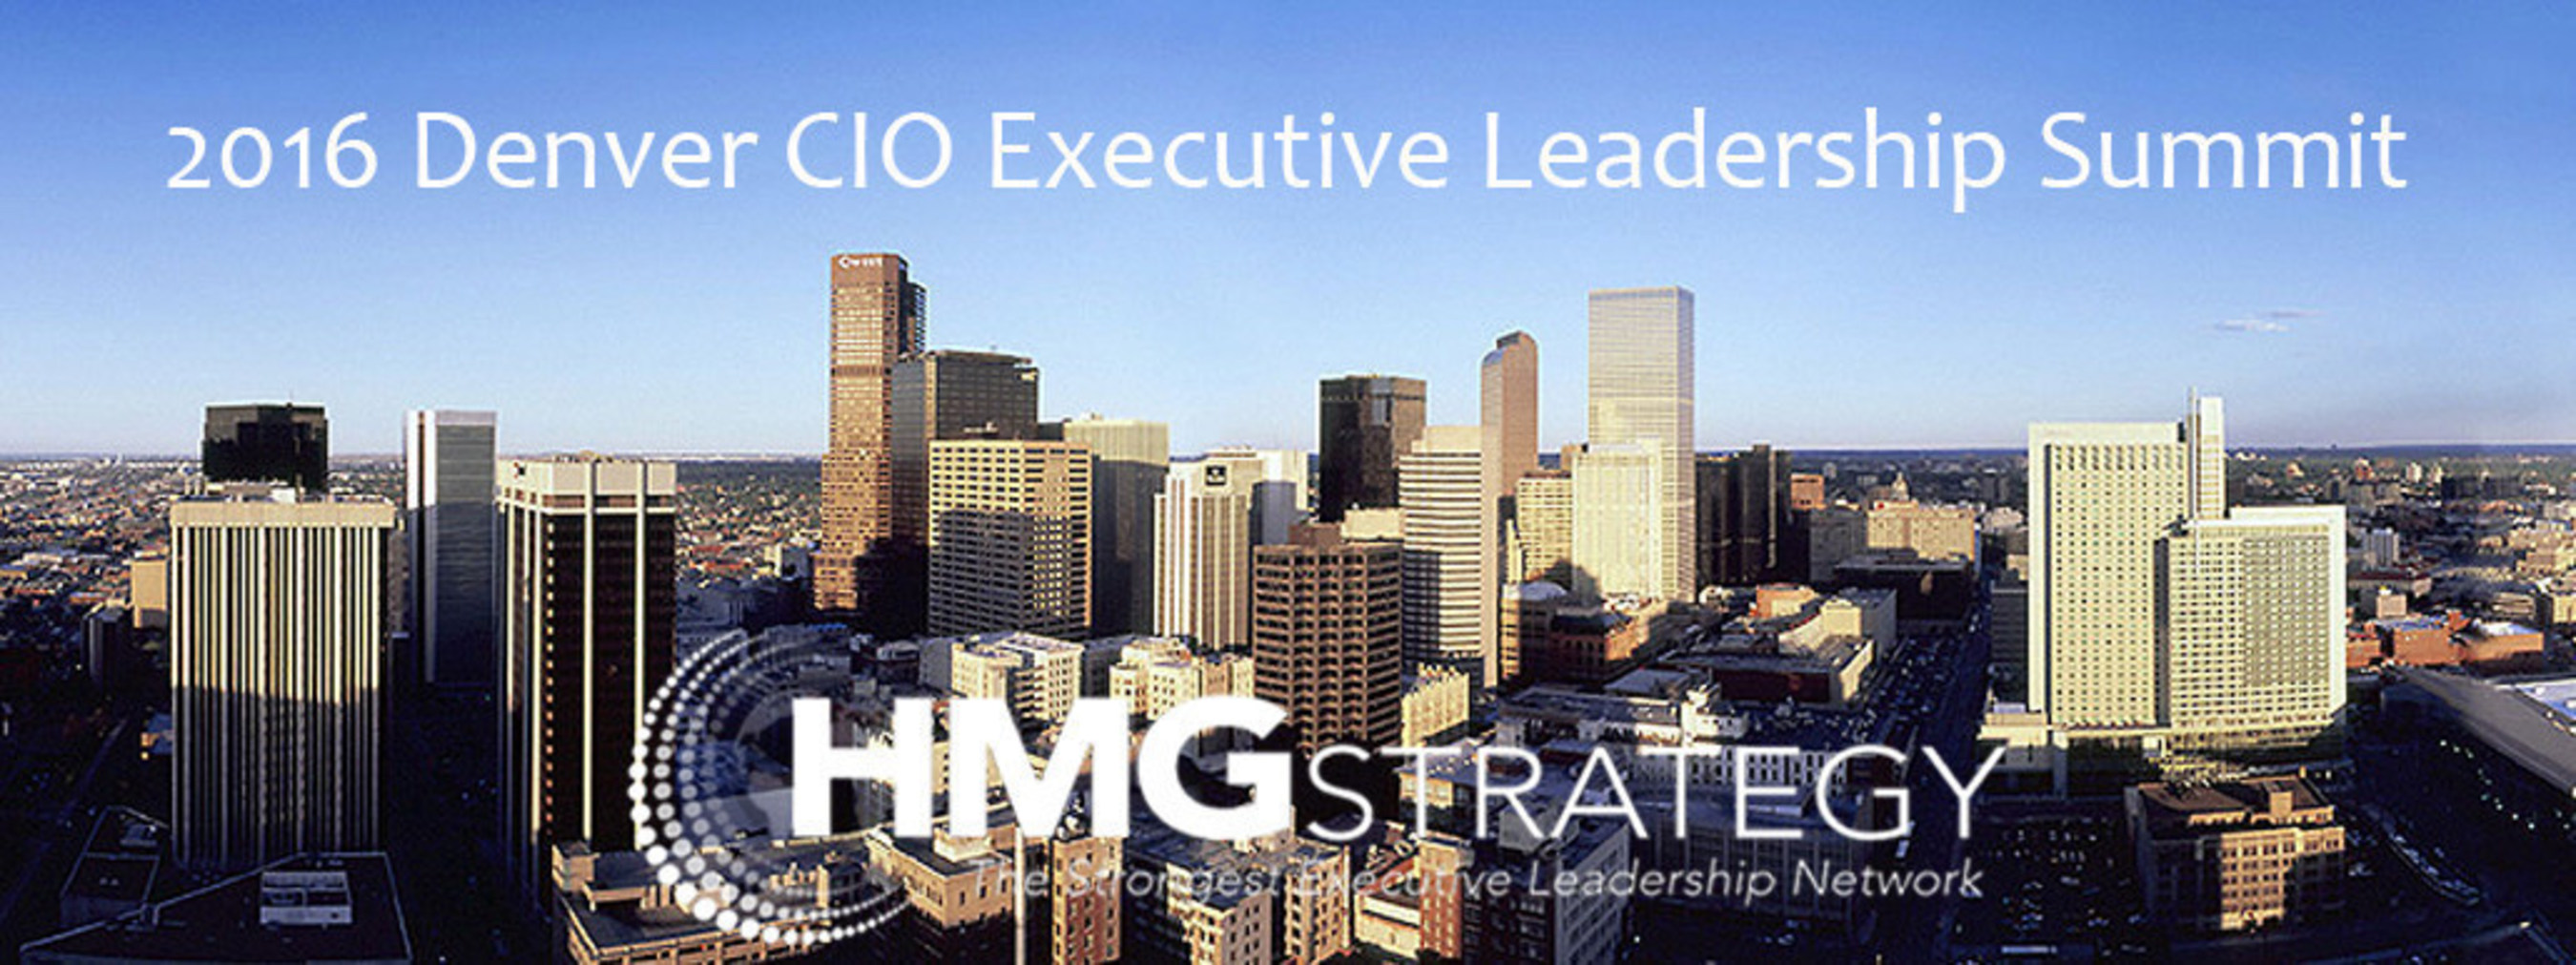 Summoning the Courage to Lead in an Era of Unprecedented Change to Dominate the Discussion at HMG Strategy's Upcoming 2016 Denver CIO Executive Leadership Summit